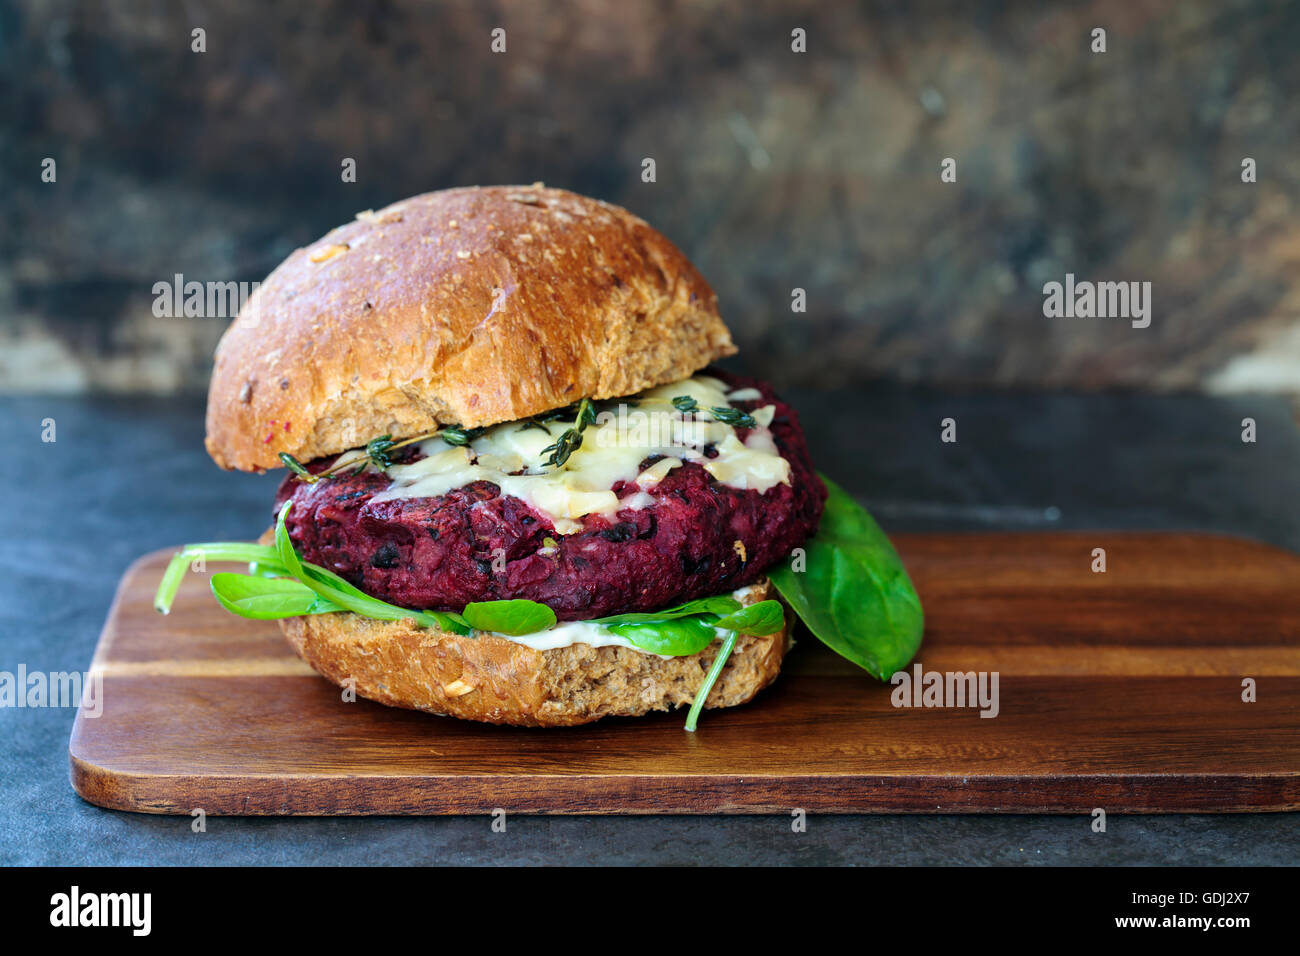 Beetroot and black bean burger with melted cheese and thyme - Stock Image